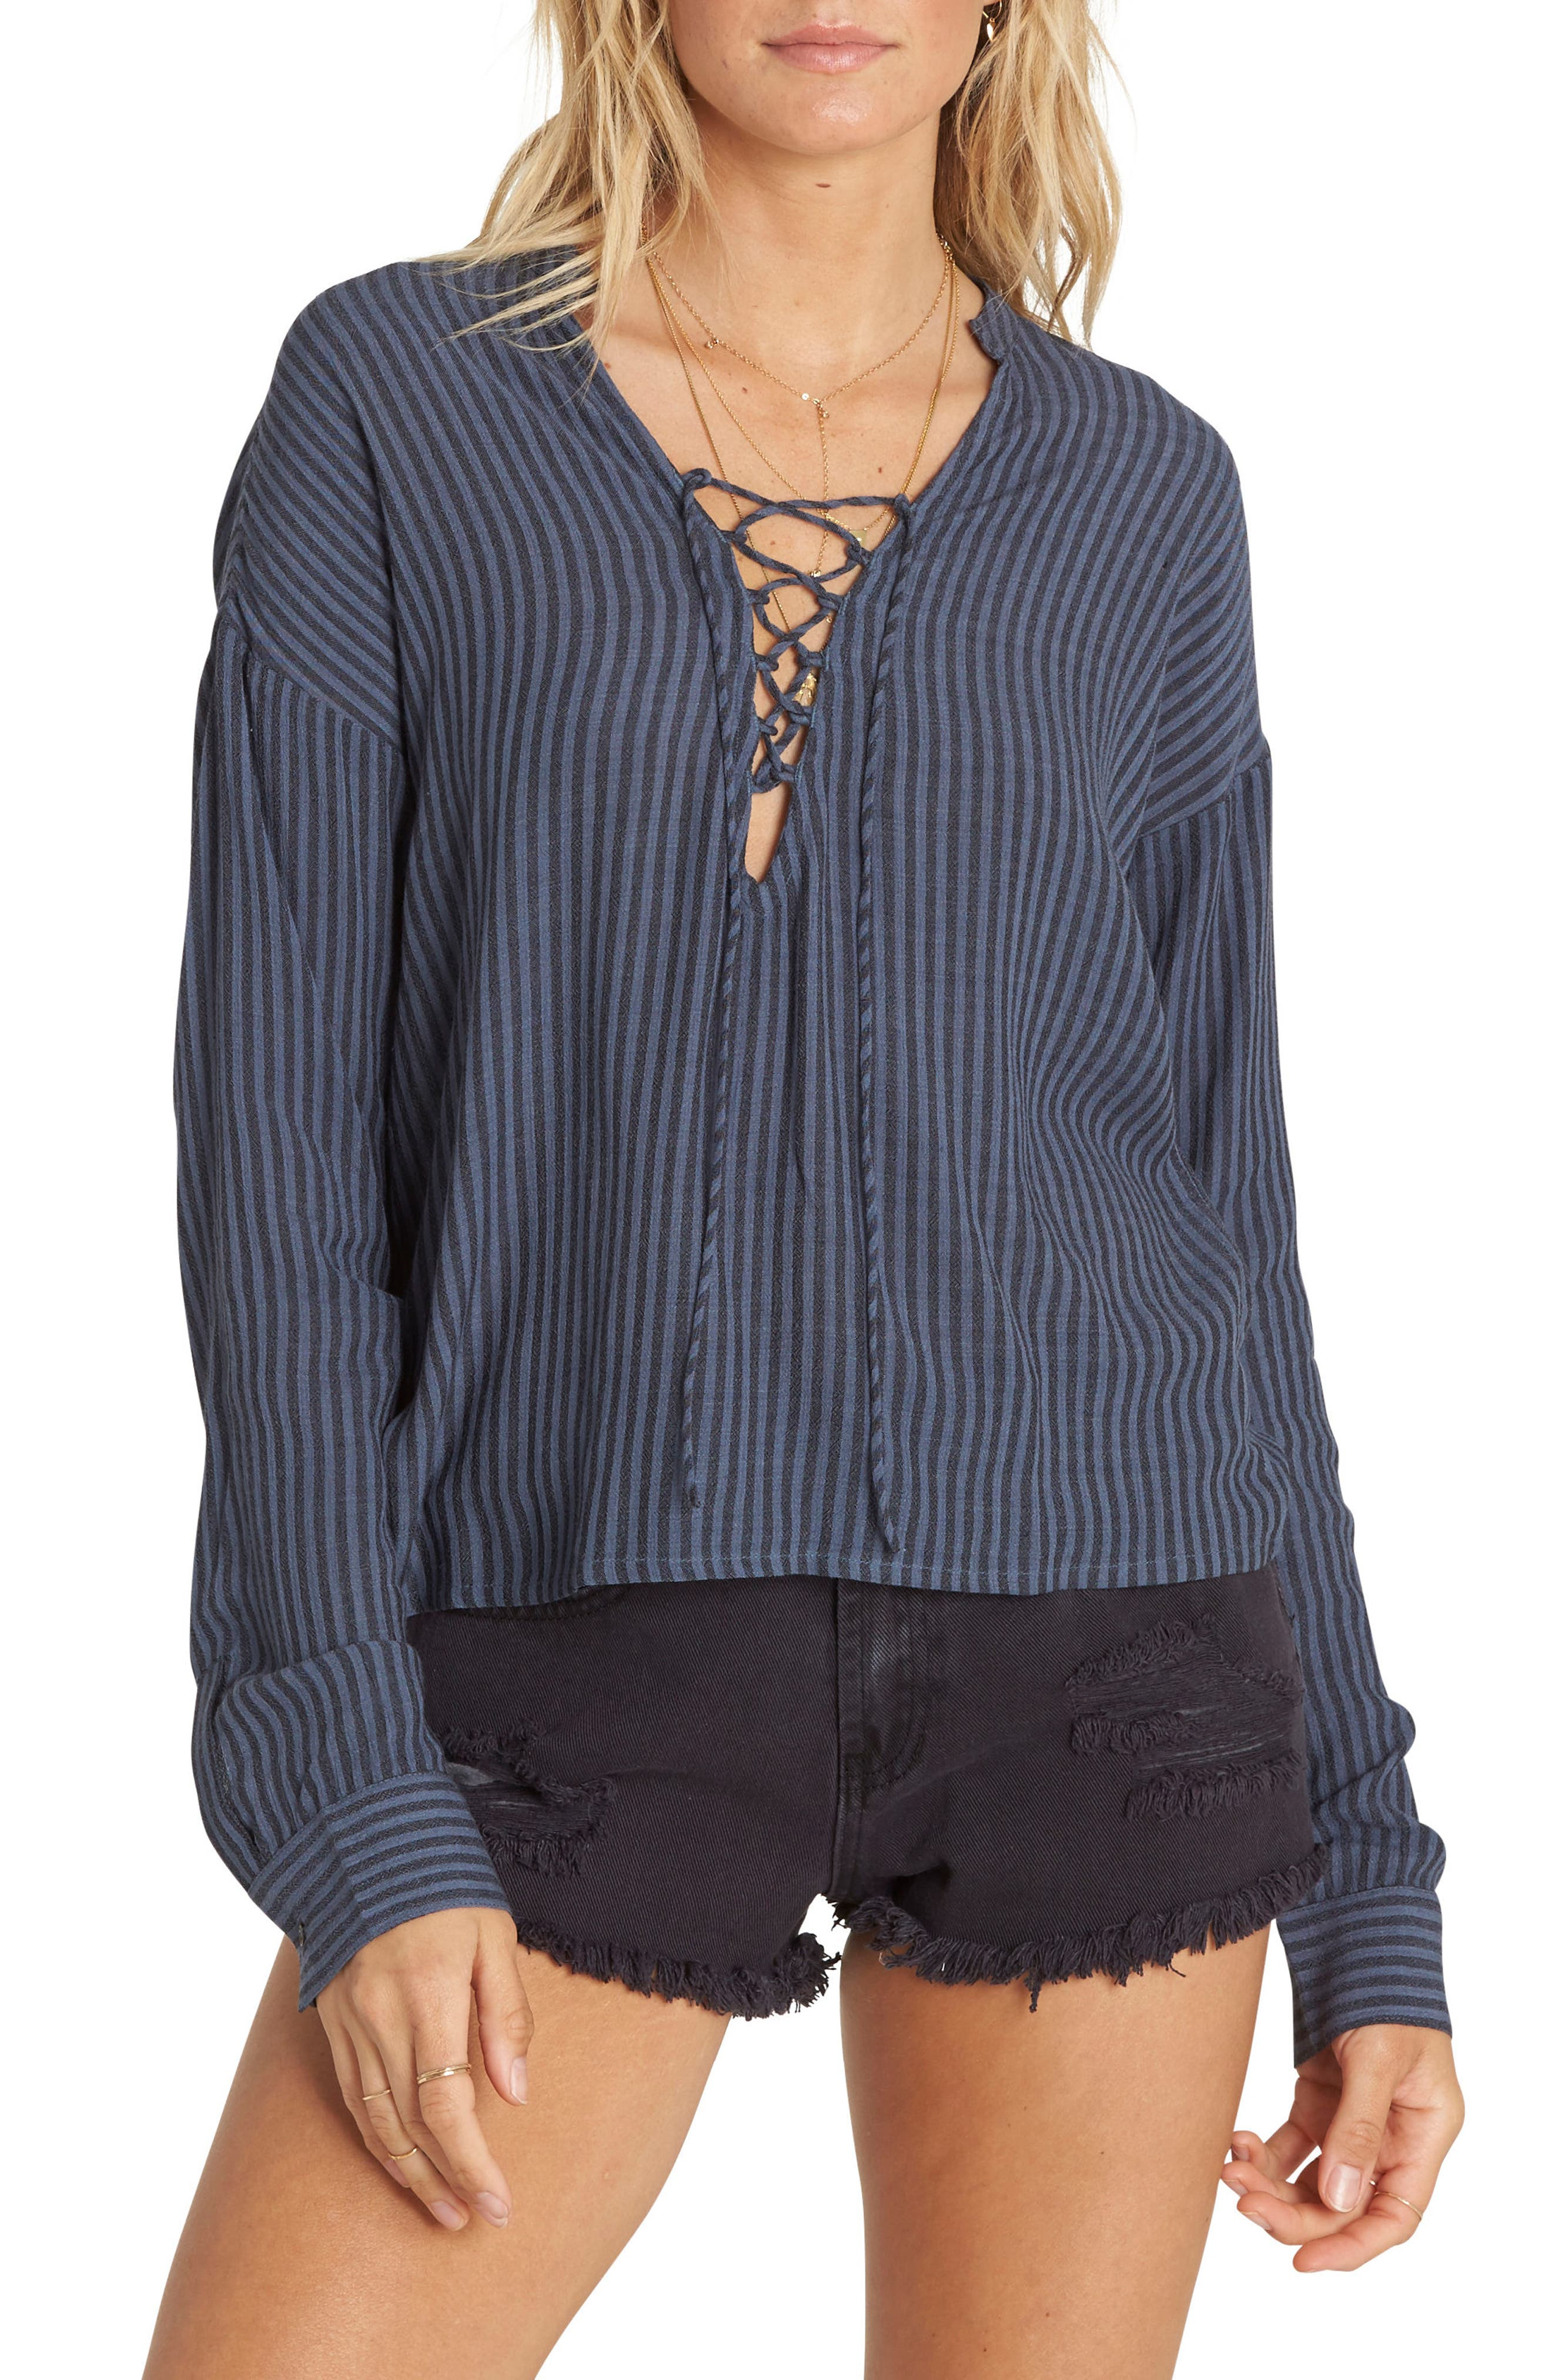 Finding Happiness Lace Up Top,                             Main thumbnail 1, color,                             Deep Sea